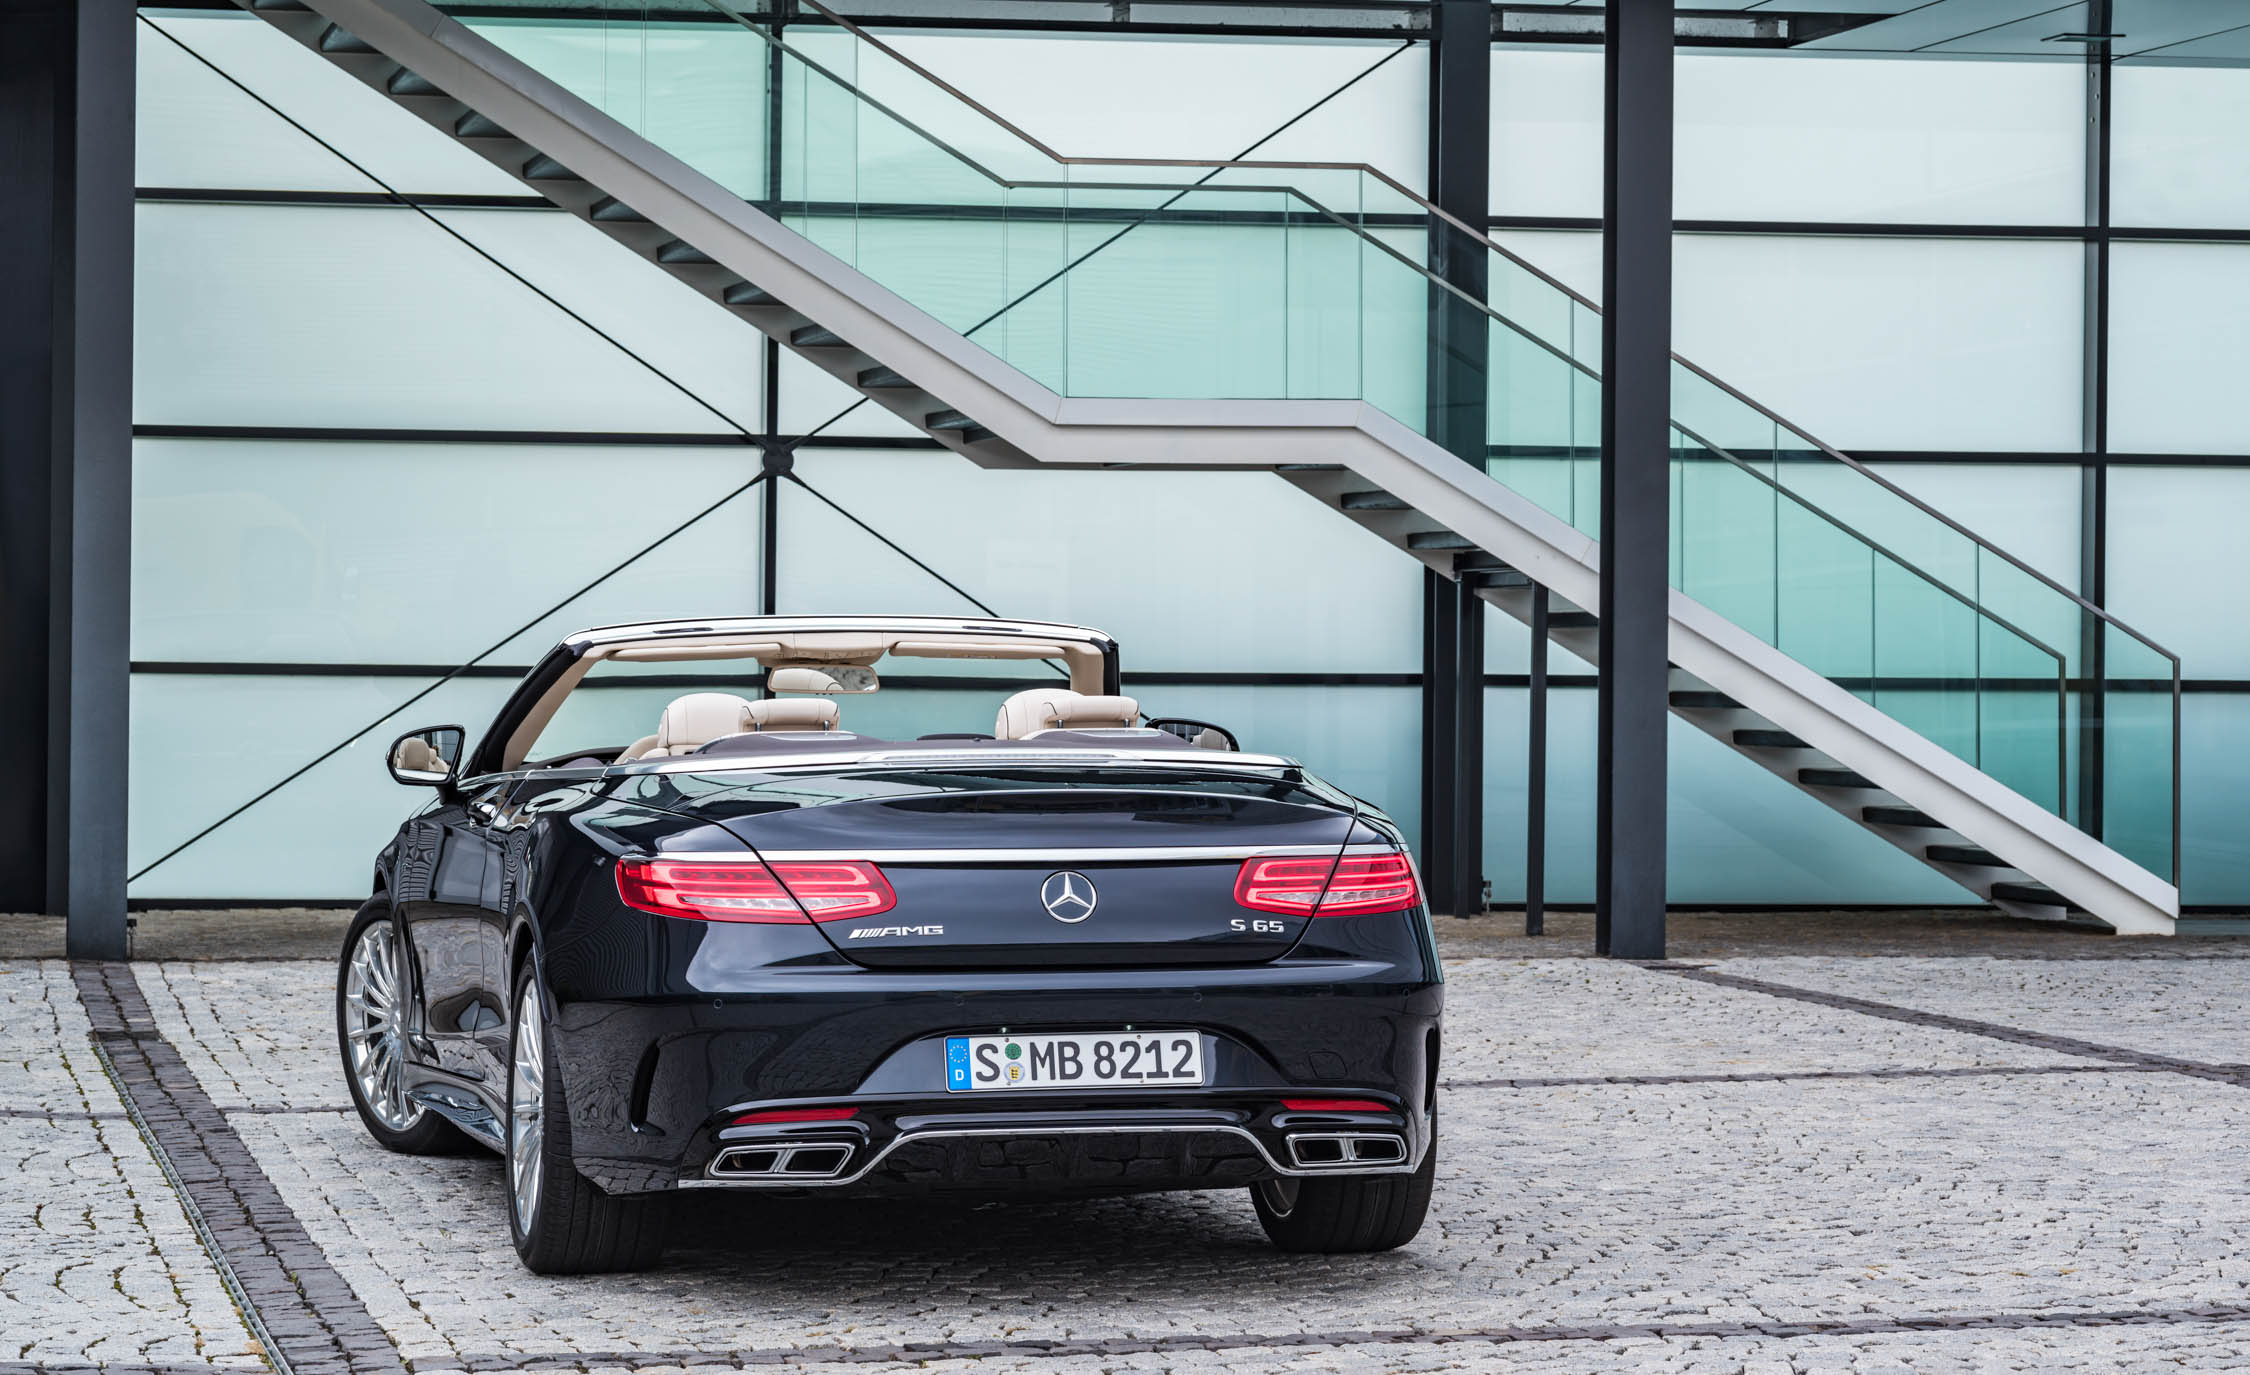 2017 Mercedes Amg S65 Cabriolet Exterior Rear View Roof Open (View 9 of 15)